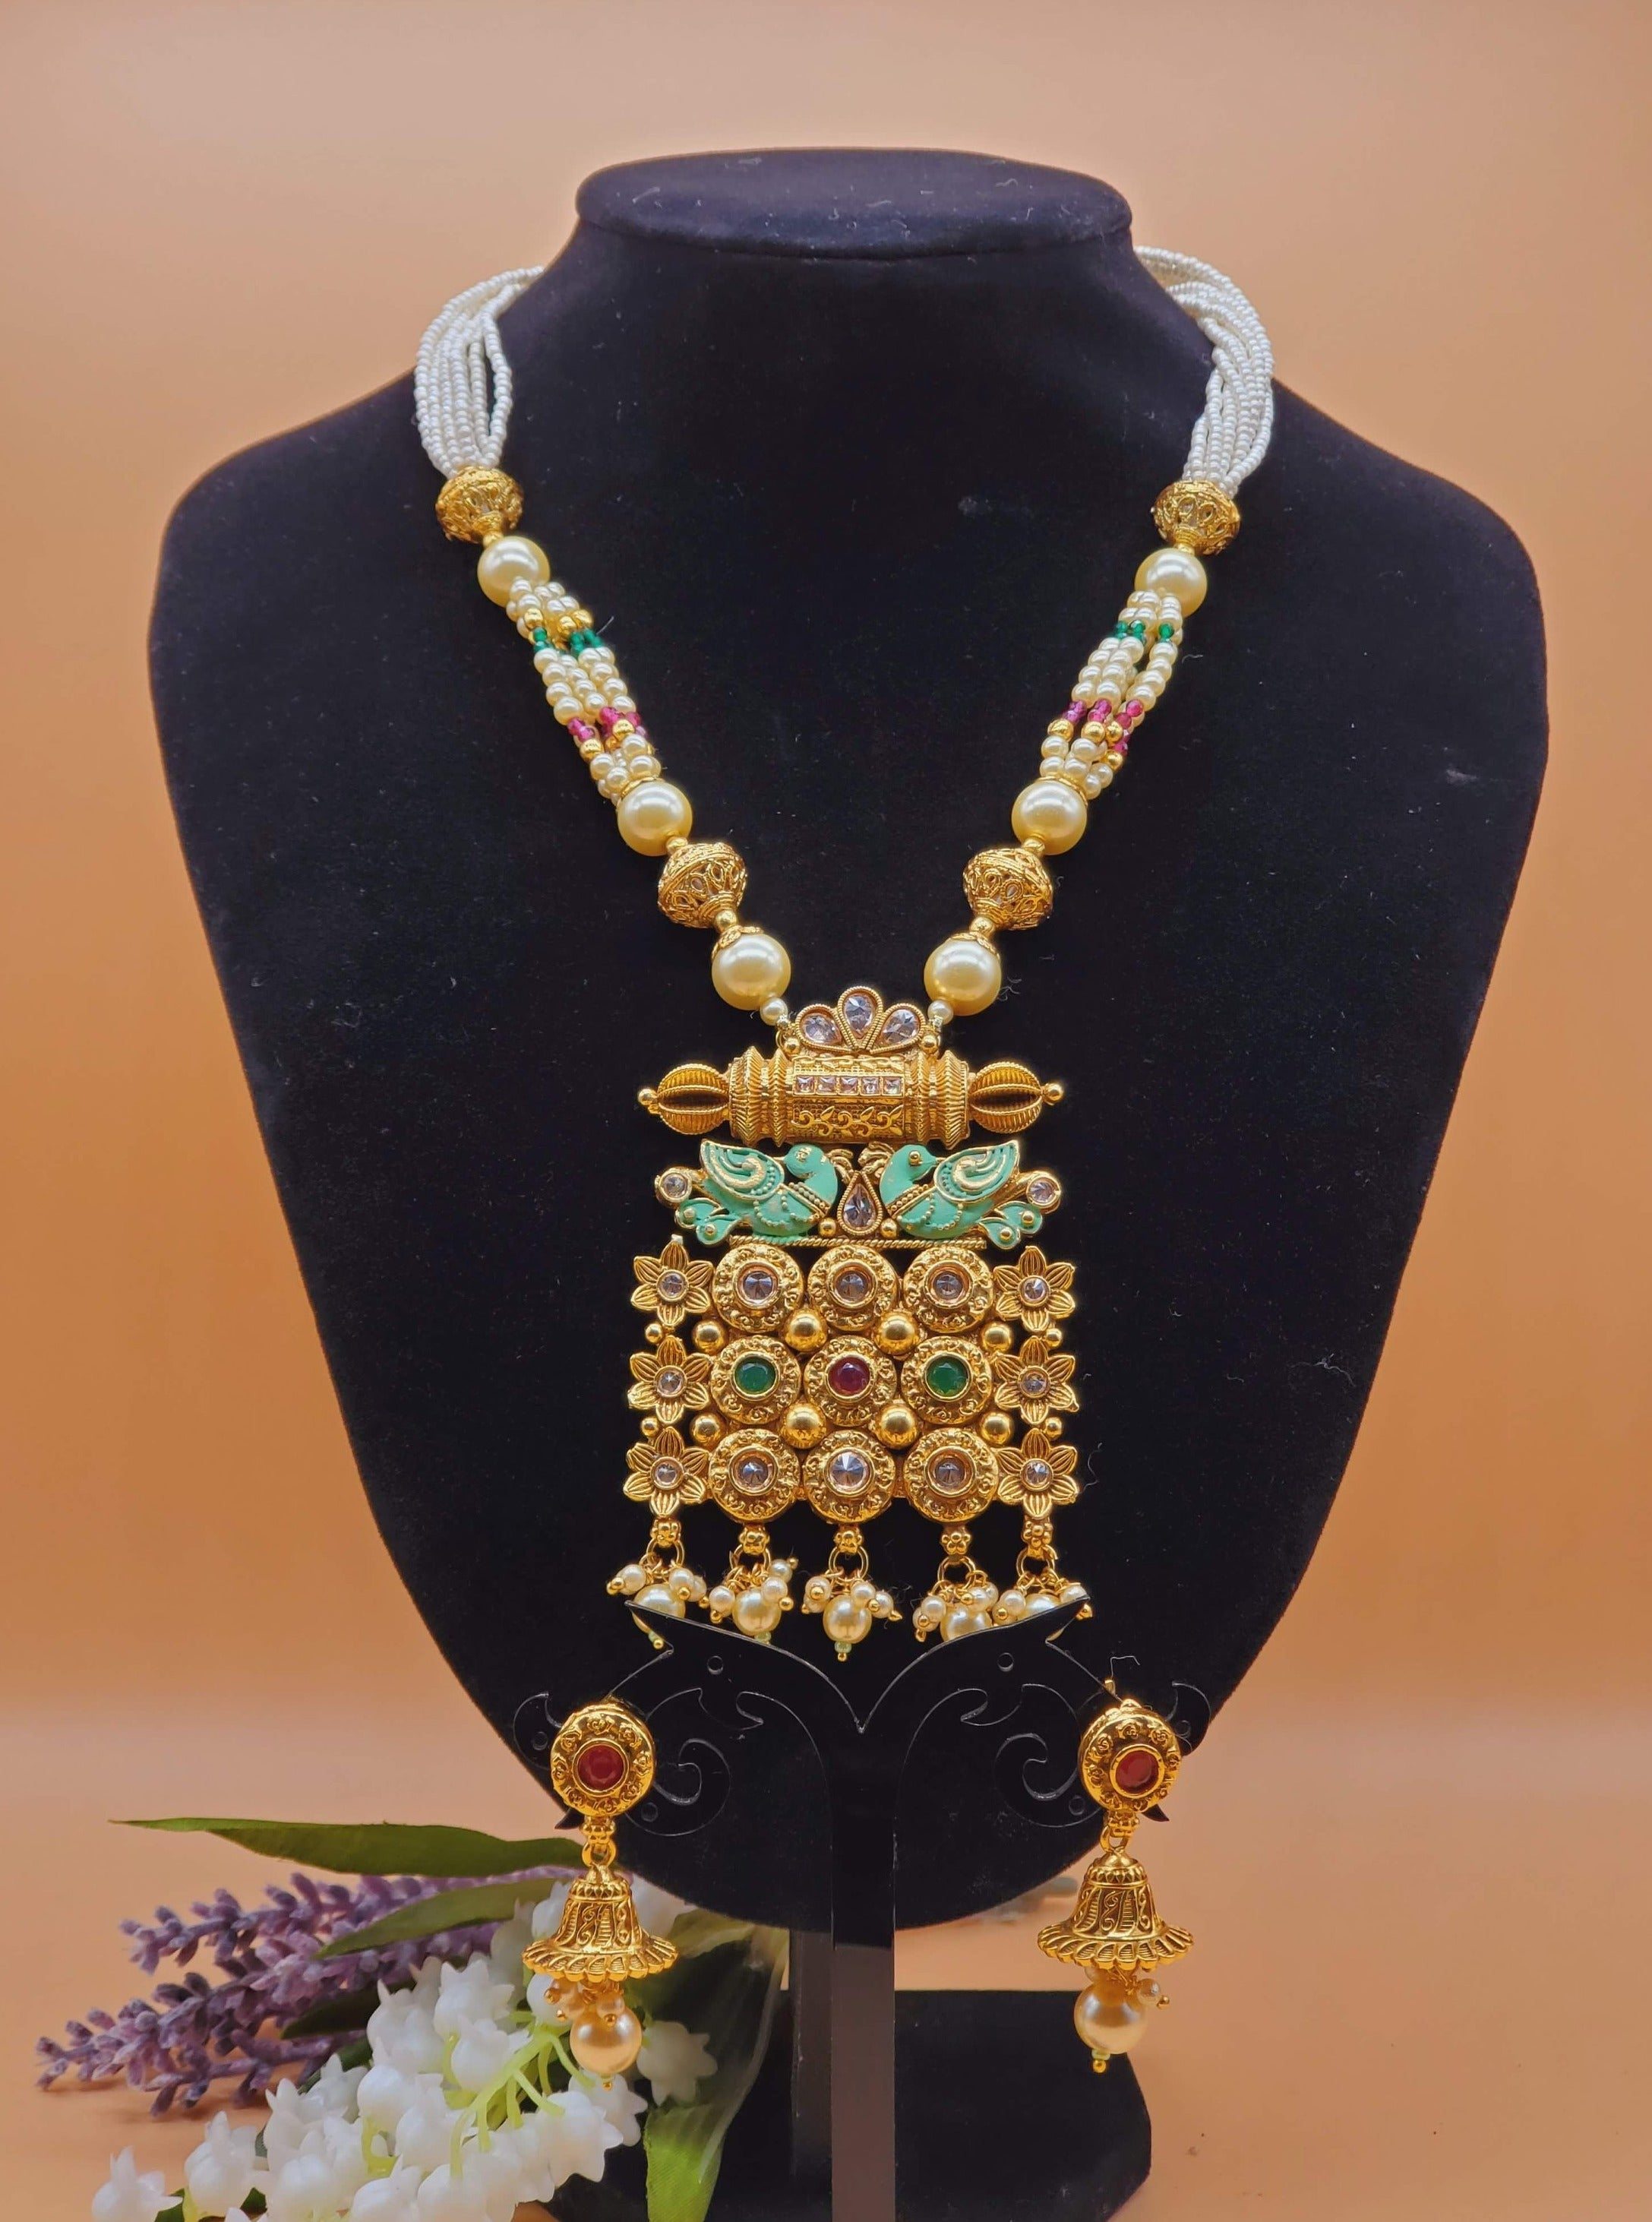 kundan Necklace set/long kundan rani haar/designer long necklace/pearl necklace/Indian jewelry/Indian bridal necklace set/artificial jewelry